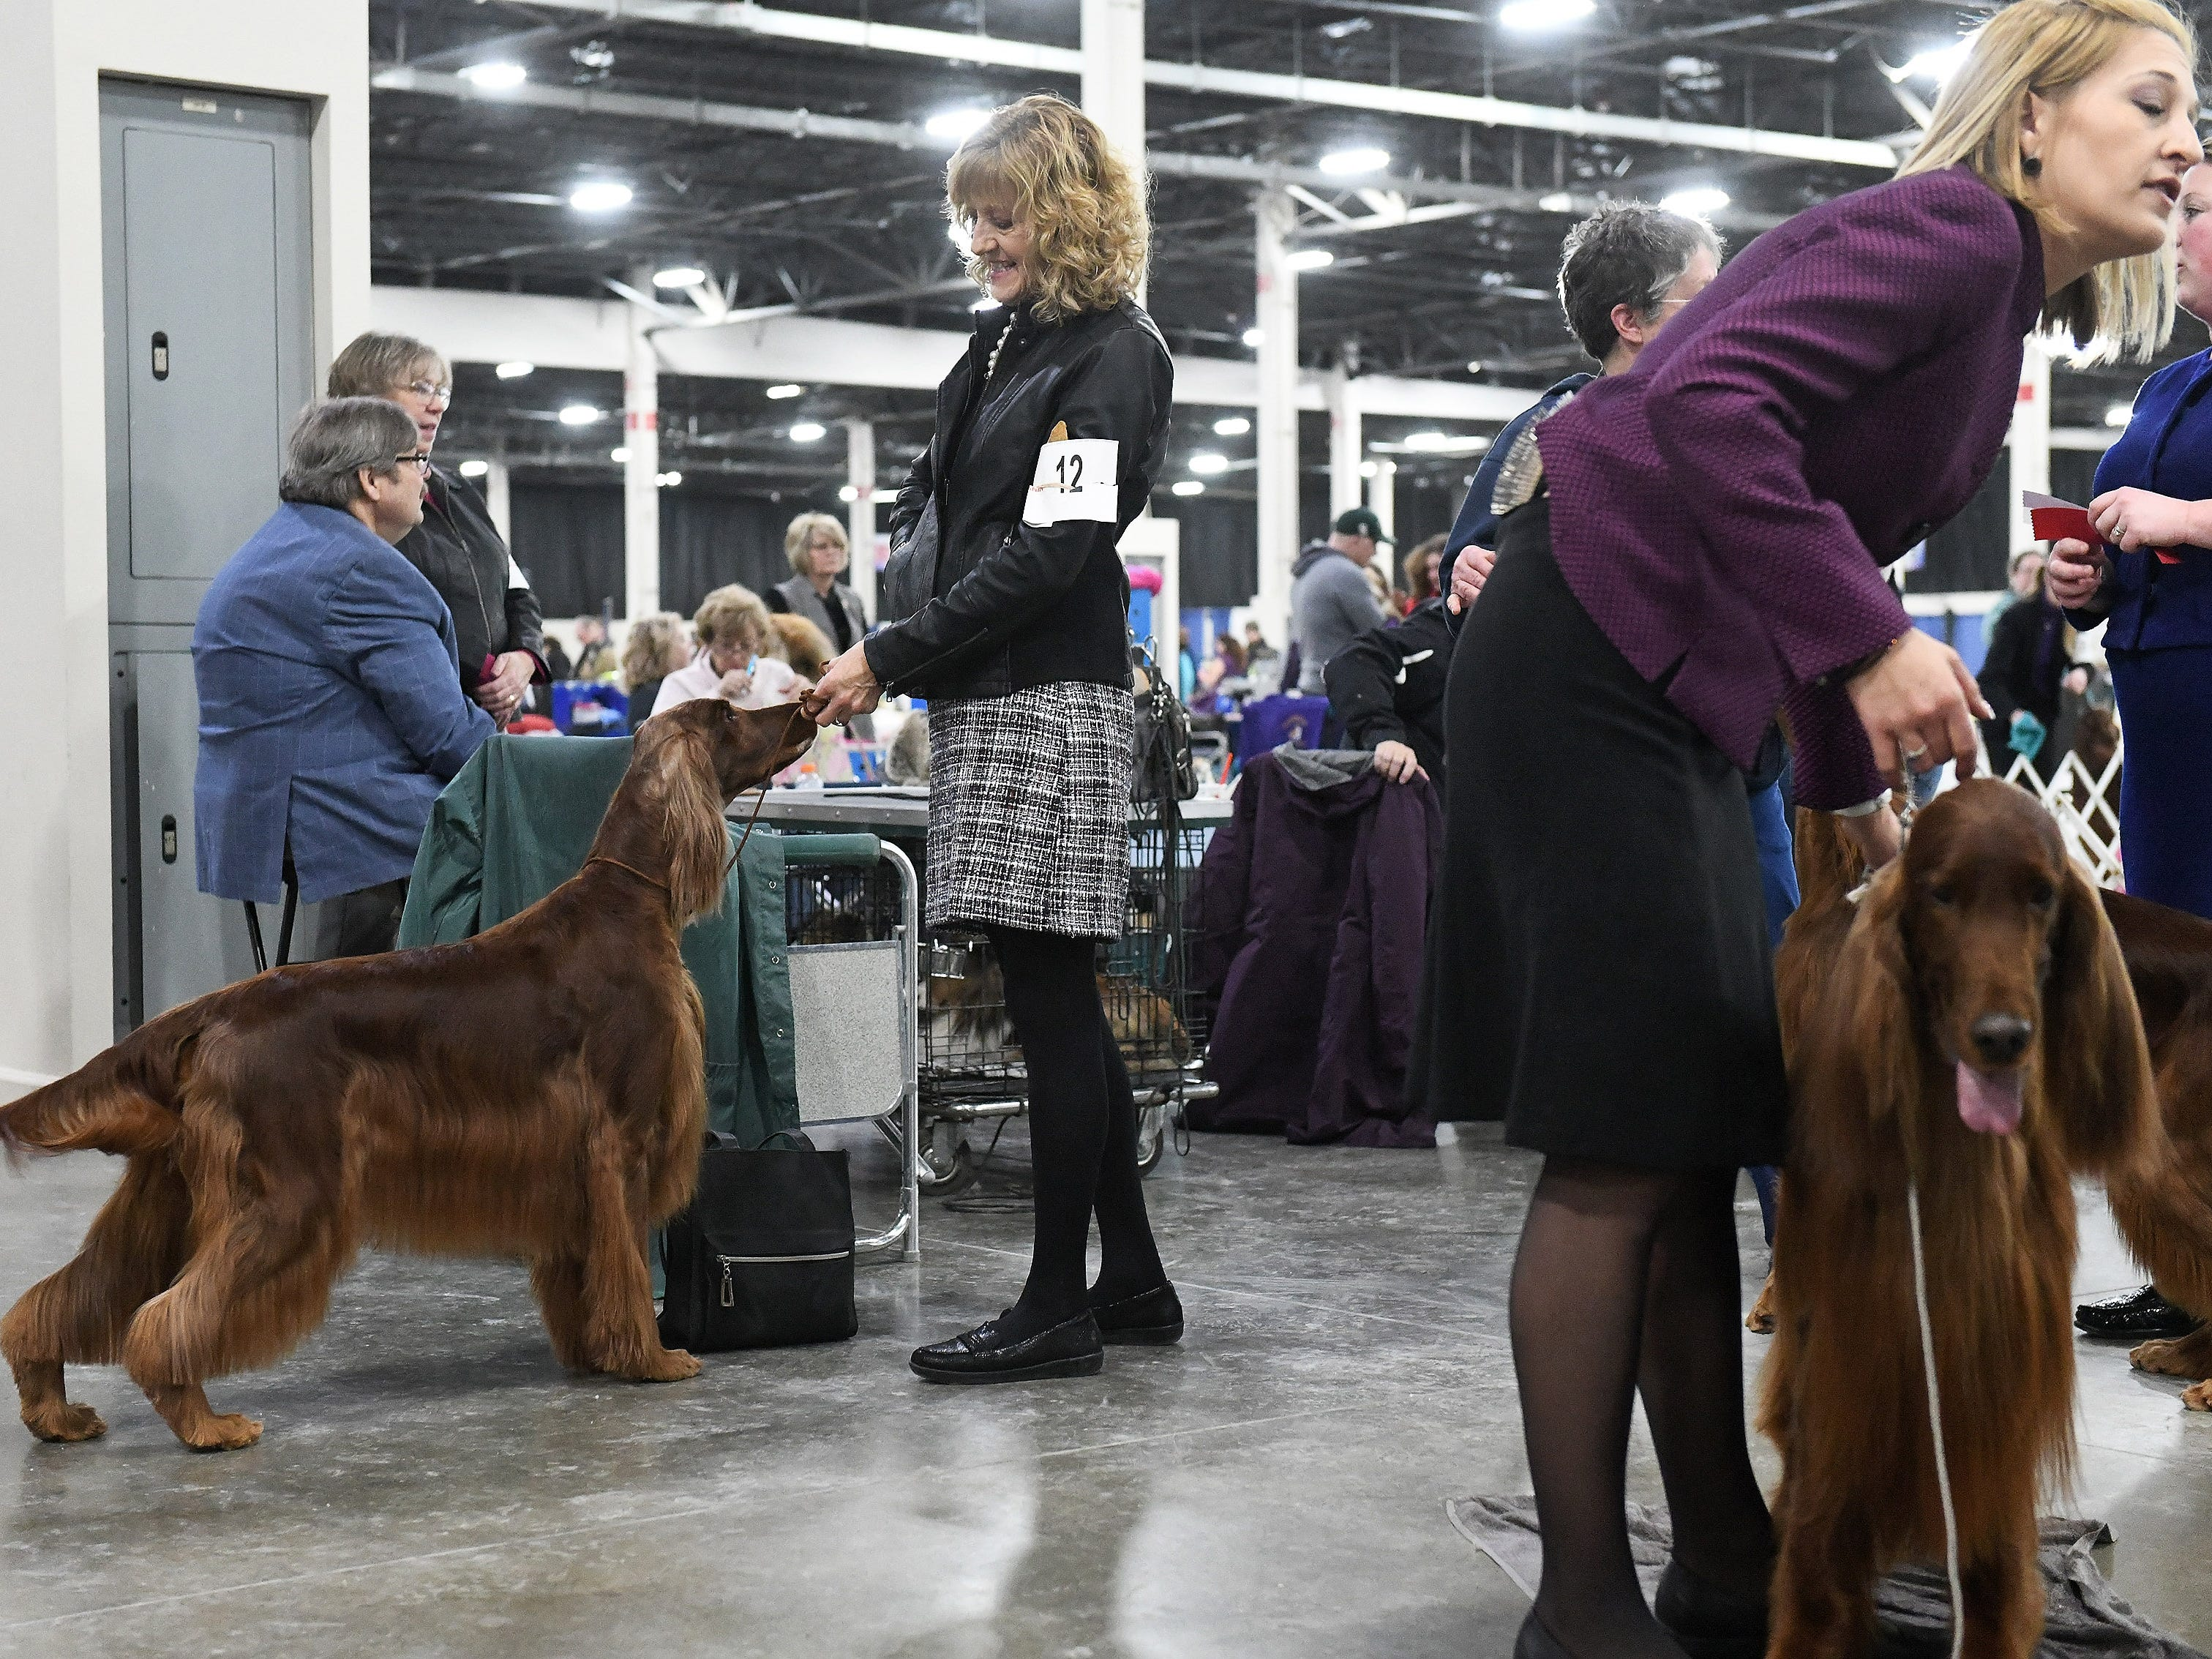 Toni Whipple of Taylor, left, gets her Irish setter, Teezer, ready for competition at the Michigan Winter Dog Classic.